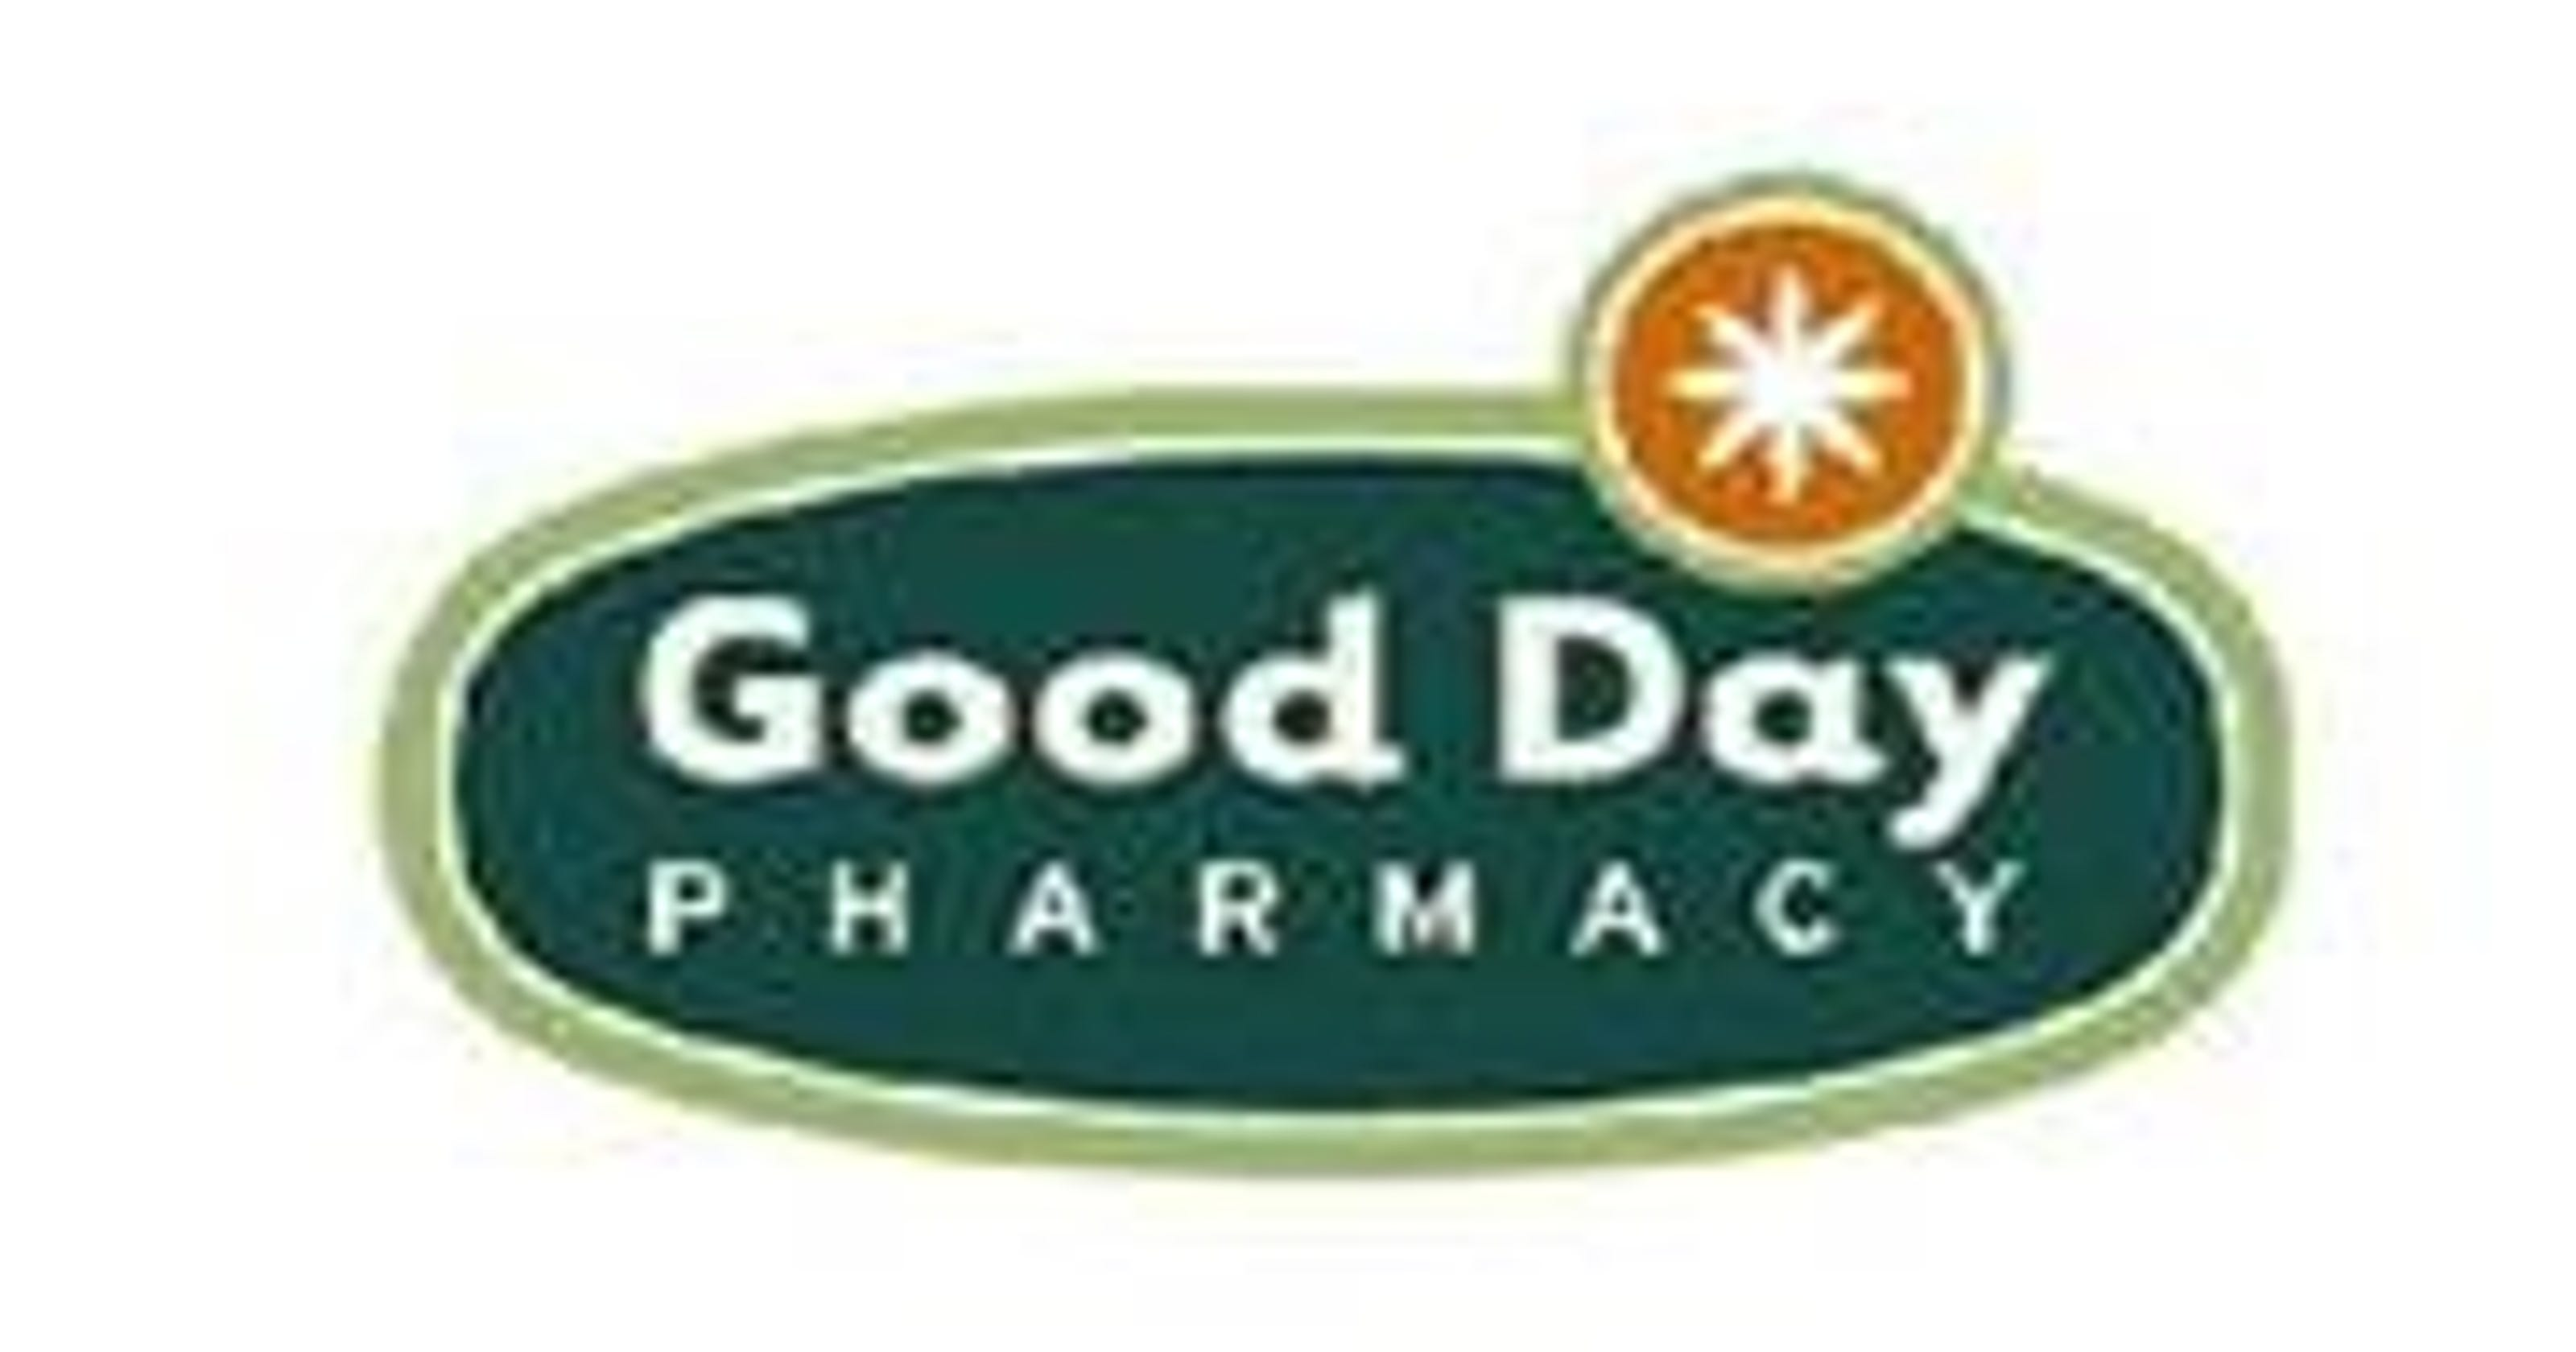 324c3e147f8c9 Good Day Pharmacy opens Breast Care Center